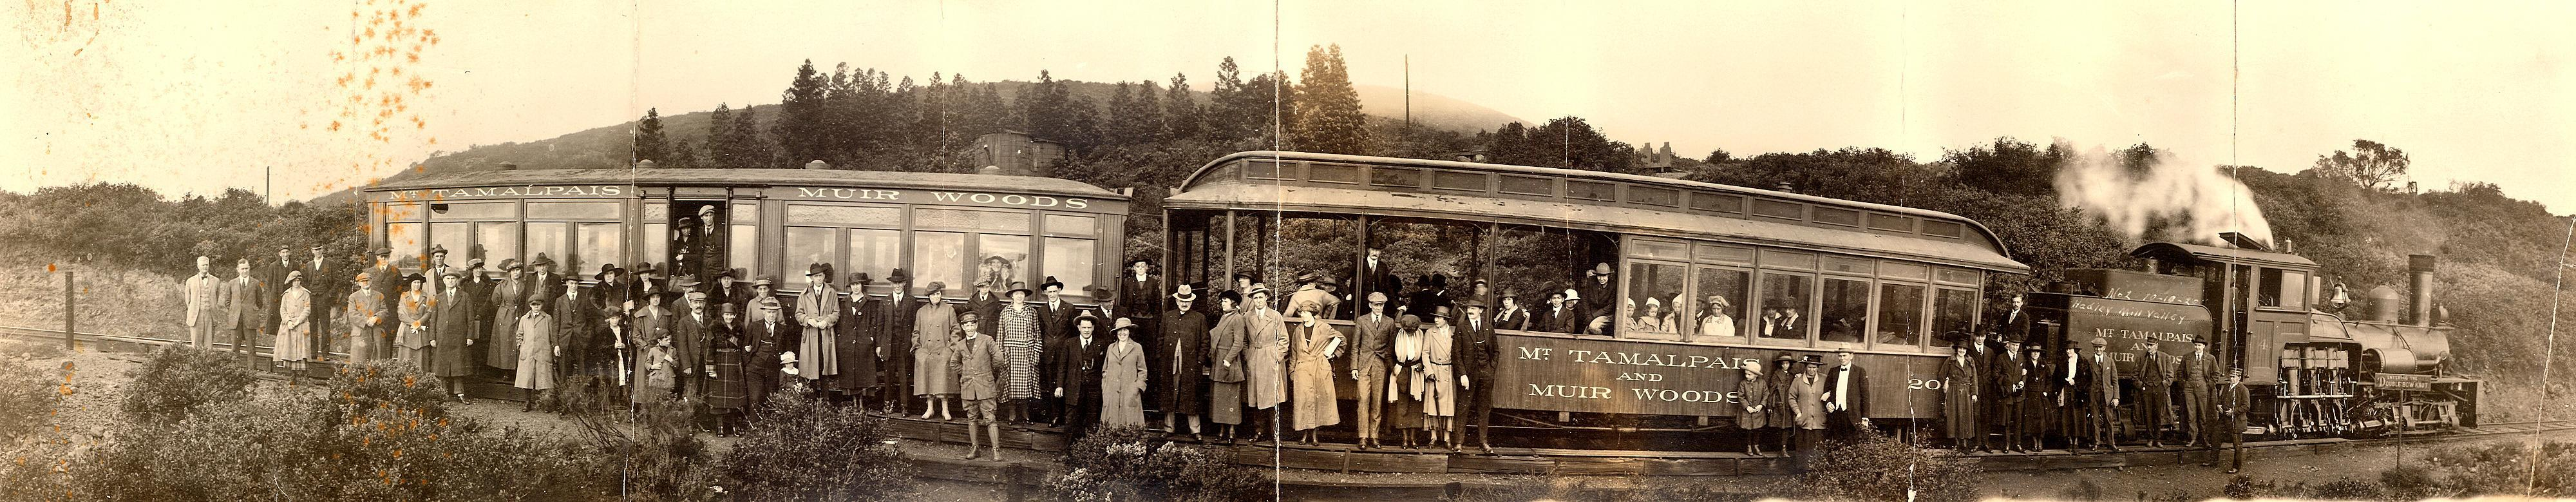 Mountain Train passengers at Mesa Station in the Double Bow Knot on the first Sunday morning train. Such photos were taken by T. C. Wohlbruck between 1915 and 1919 and sold to passengers for $1. >> click image to enlarge